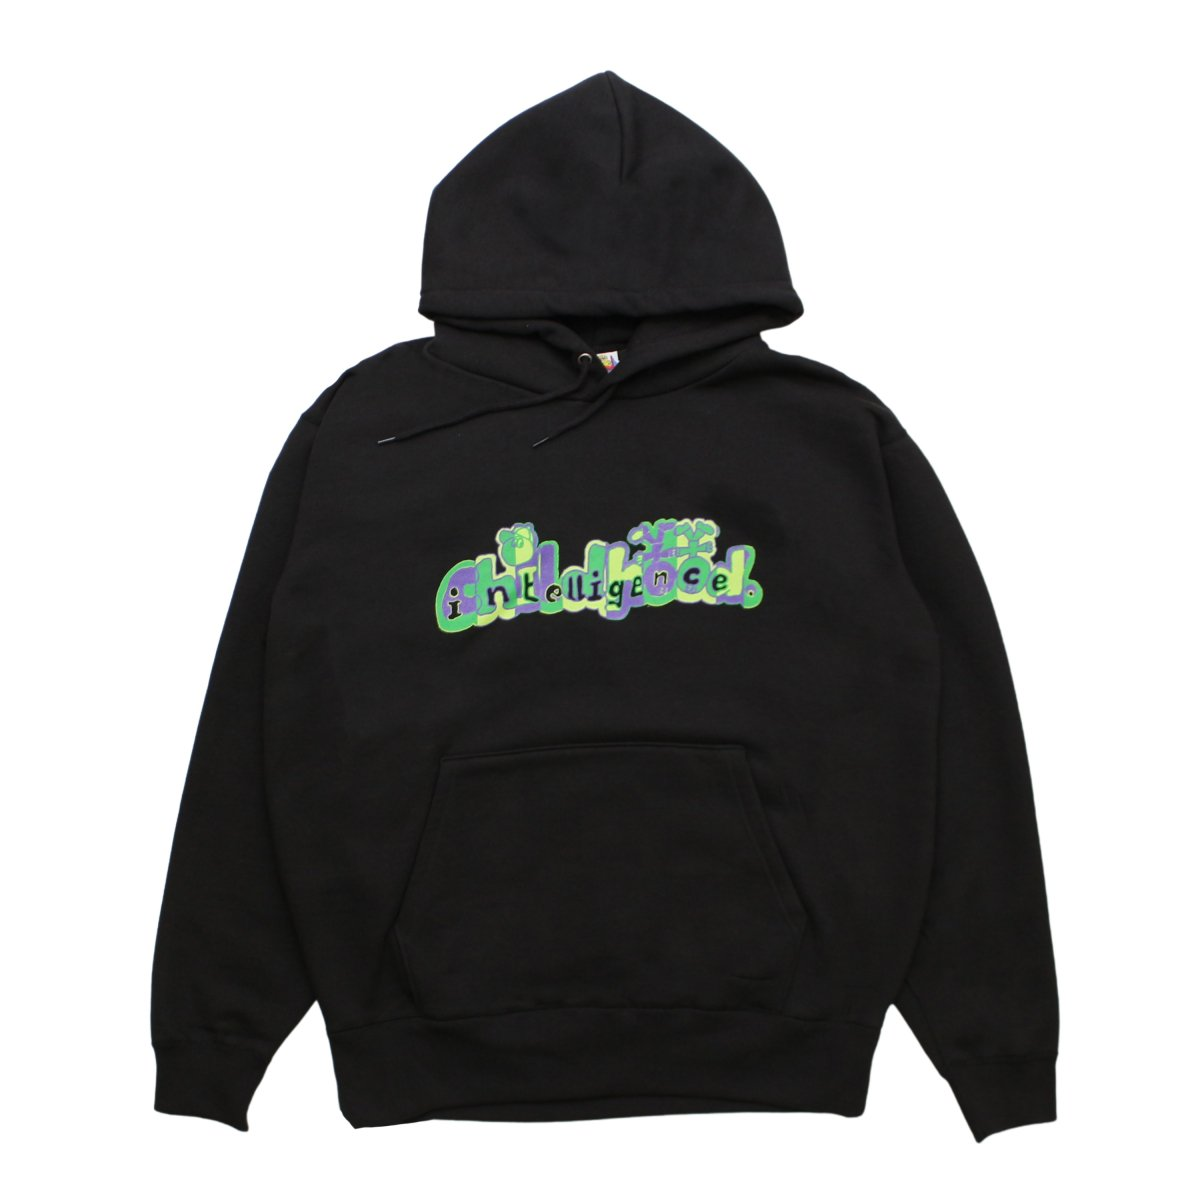 Leomi Sadler Childhoody 【BLACK】